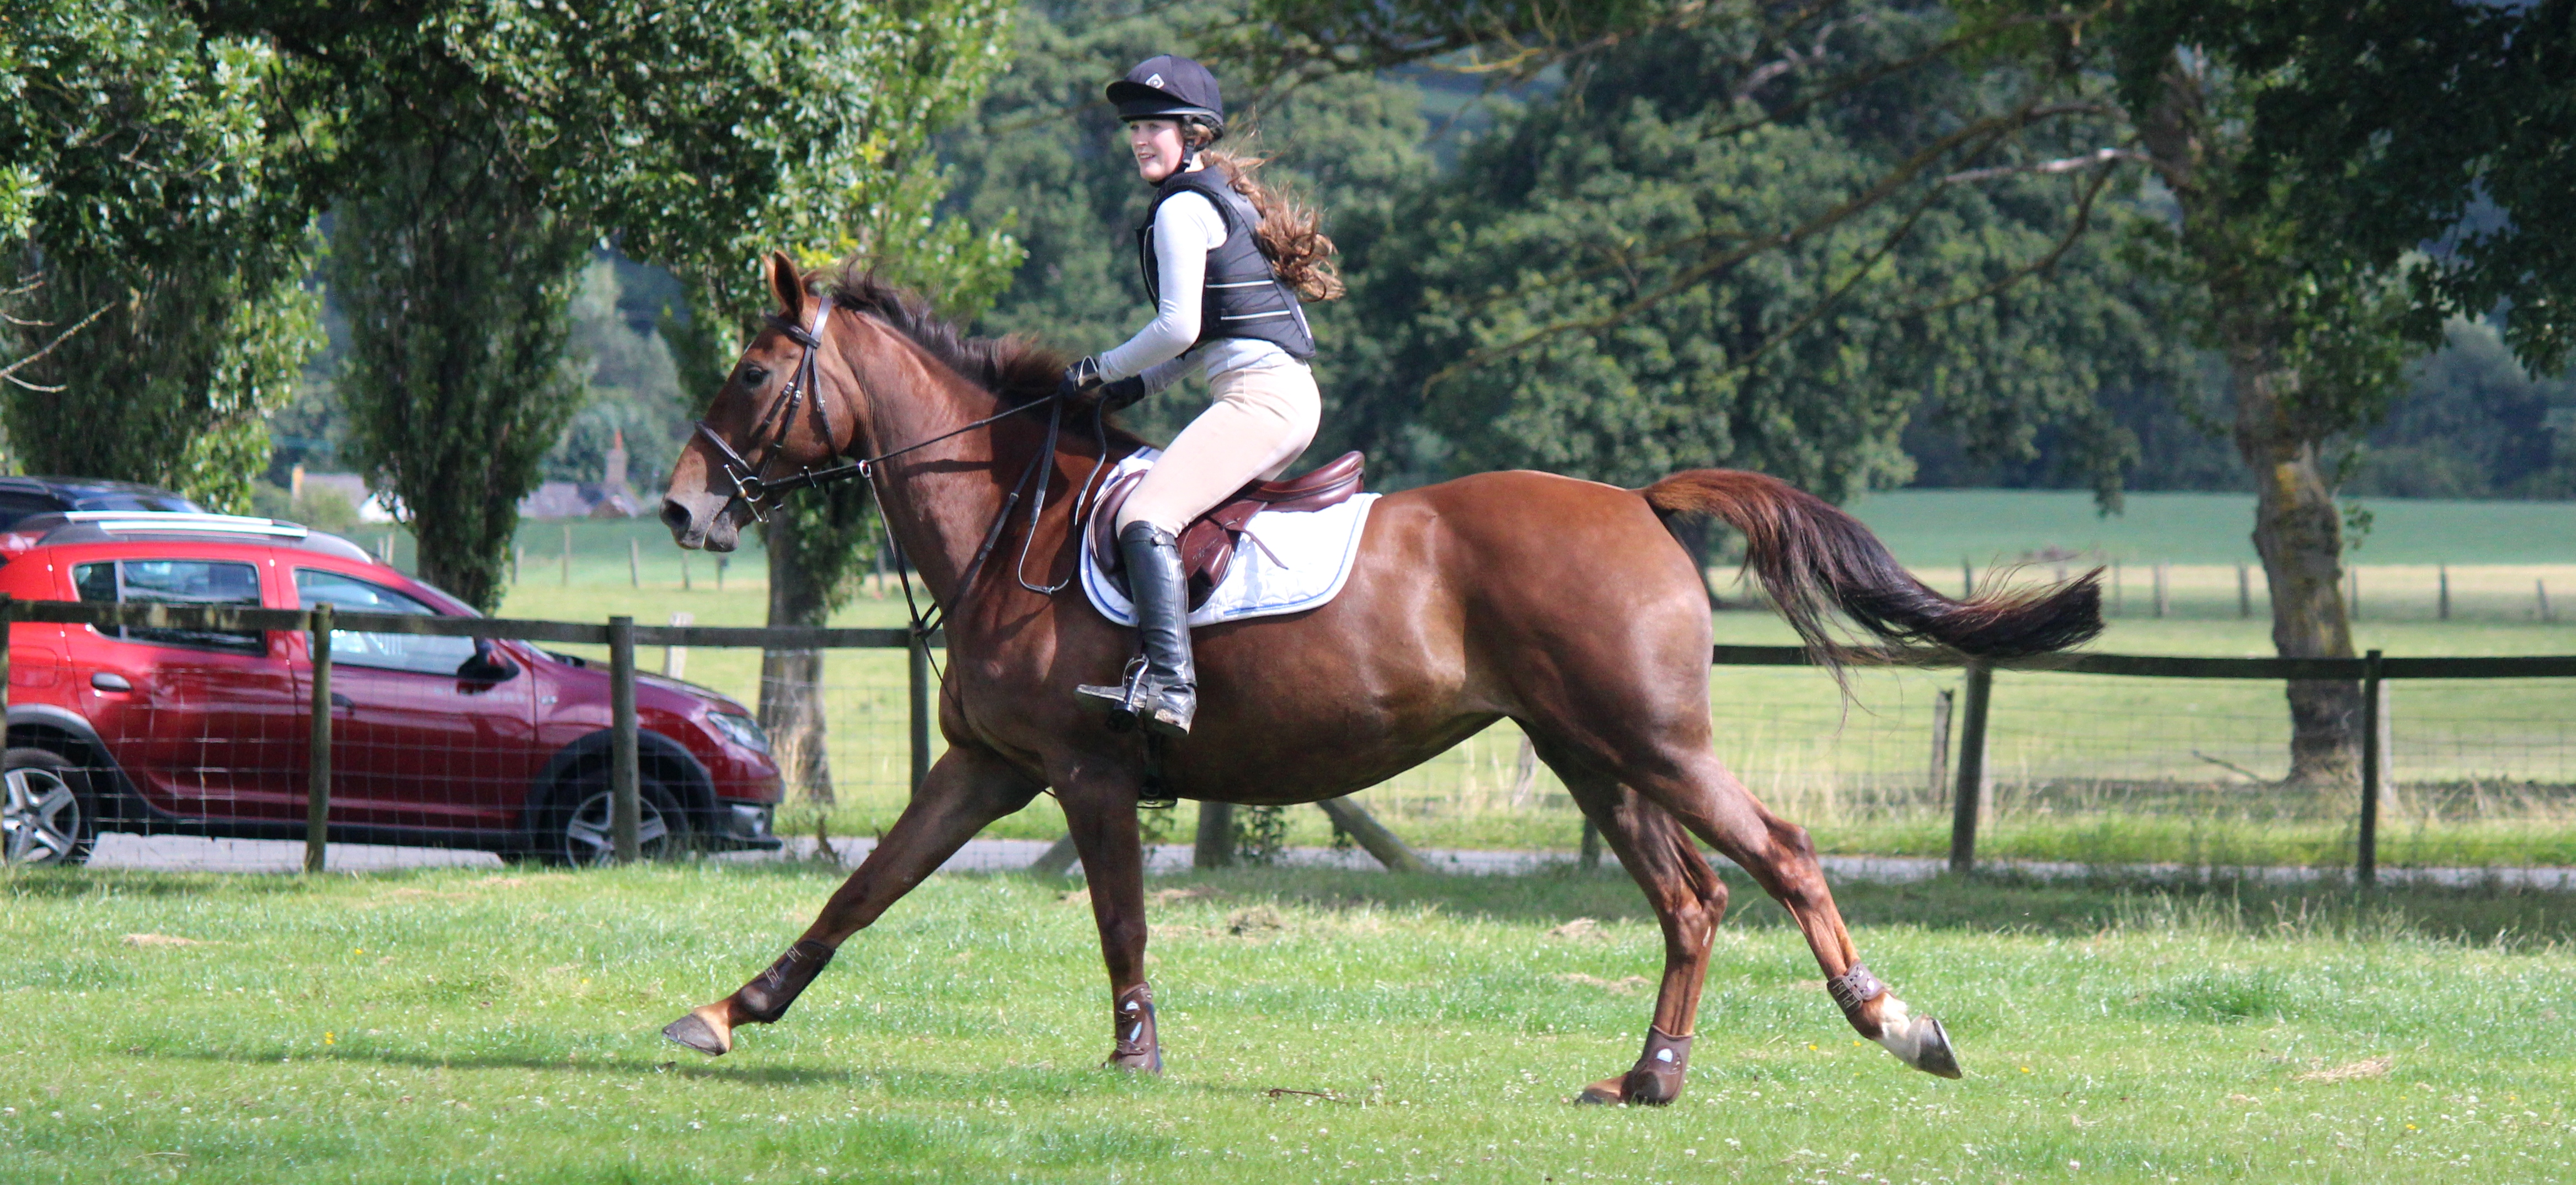 horse riding & livery yard st asaph